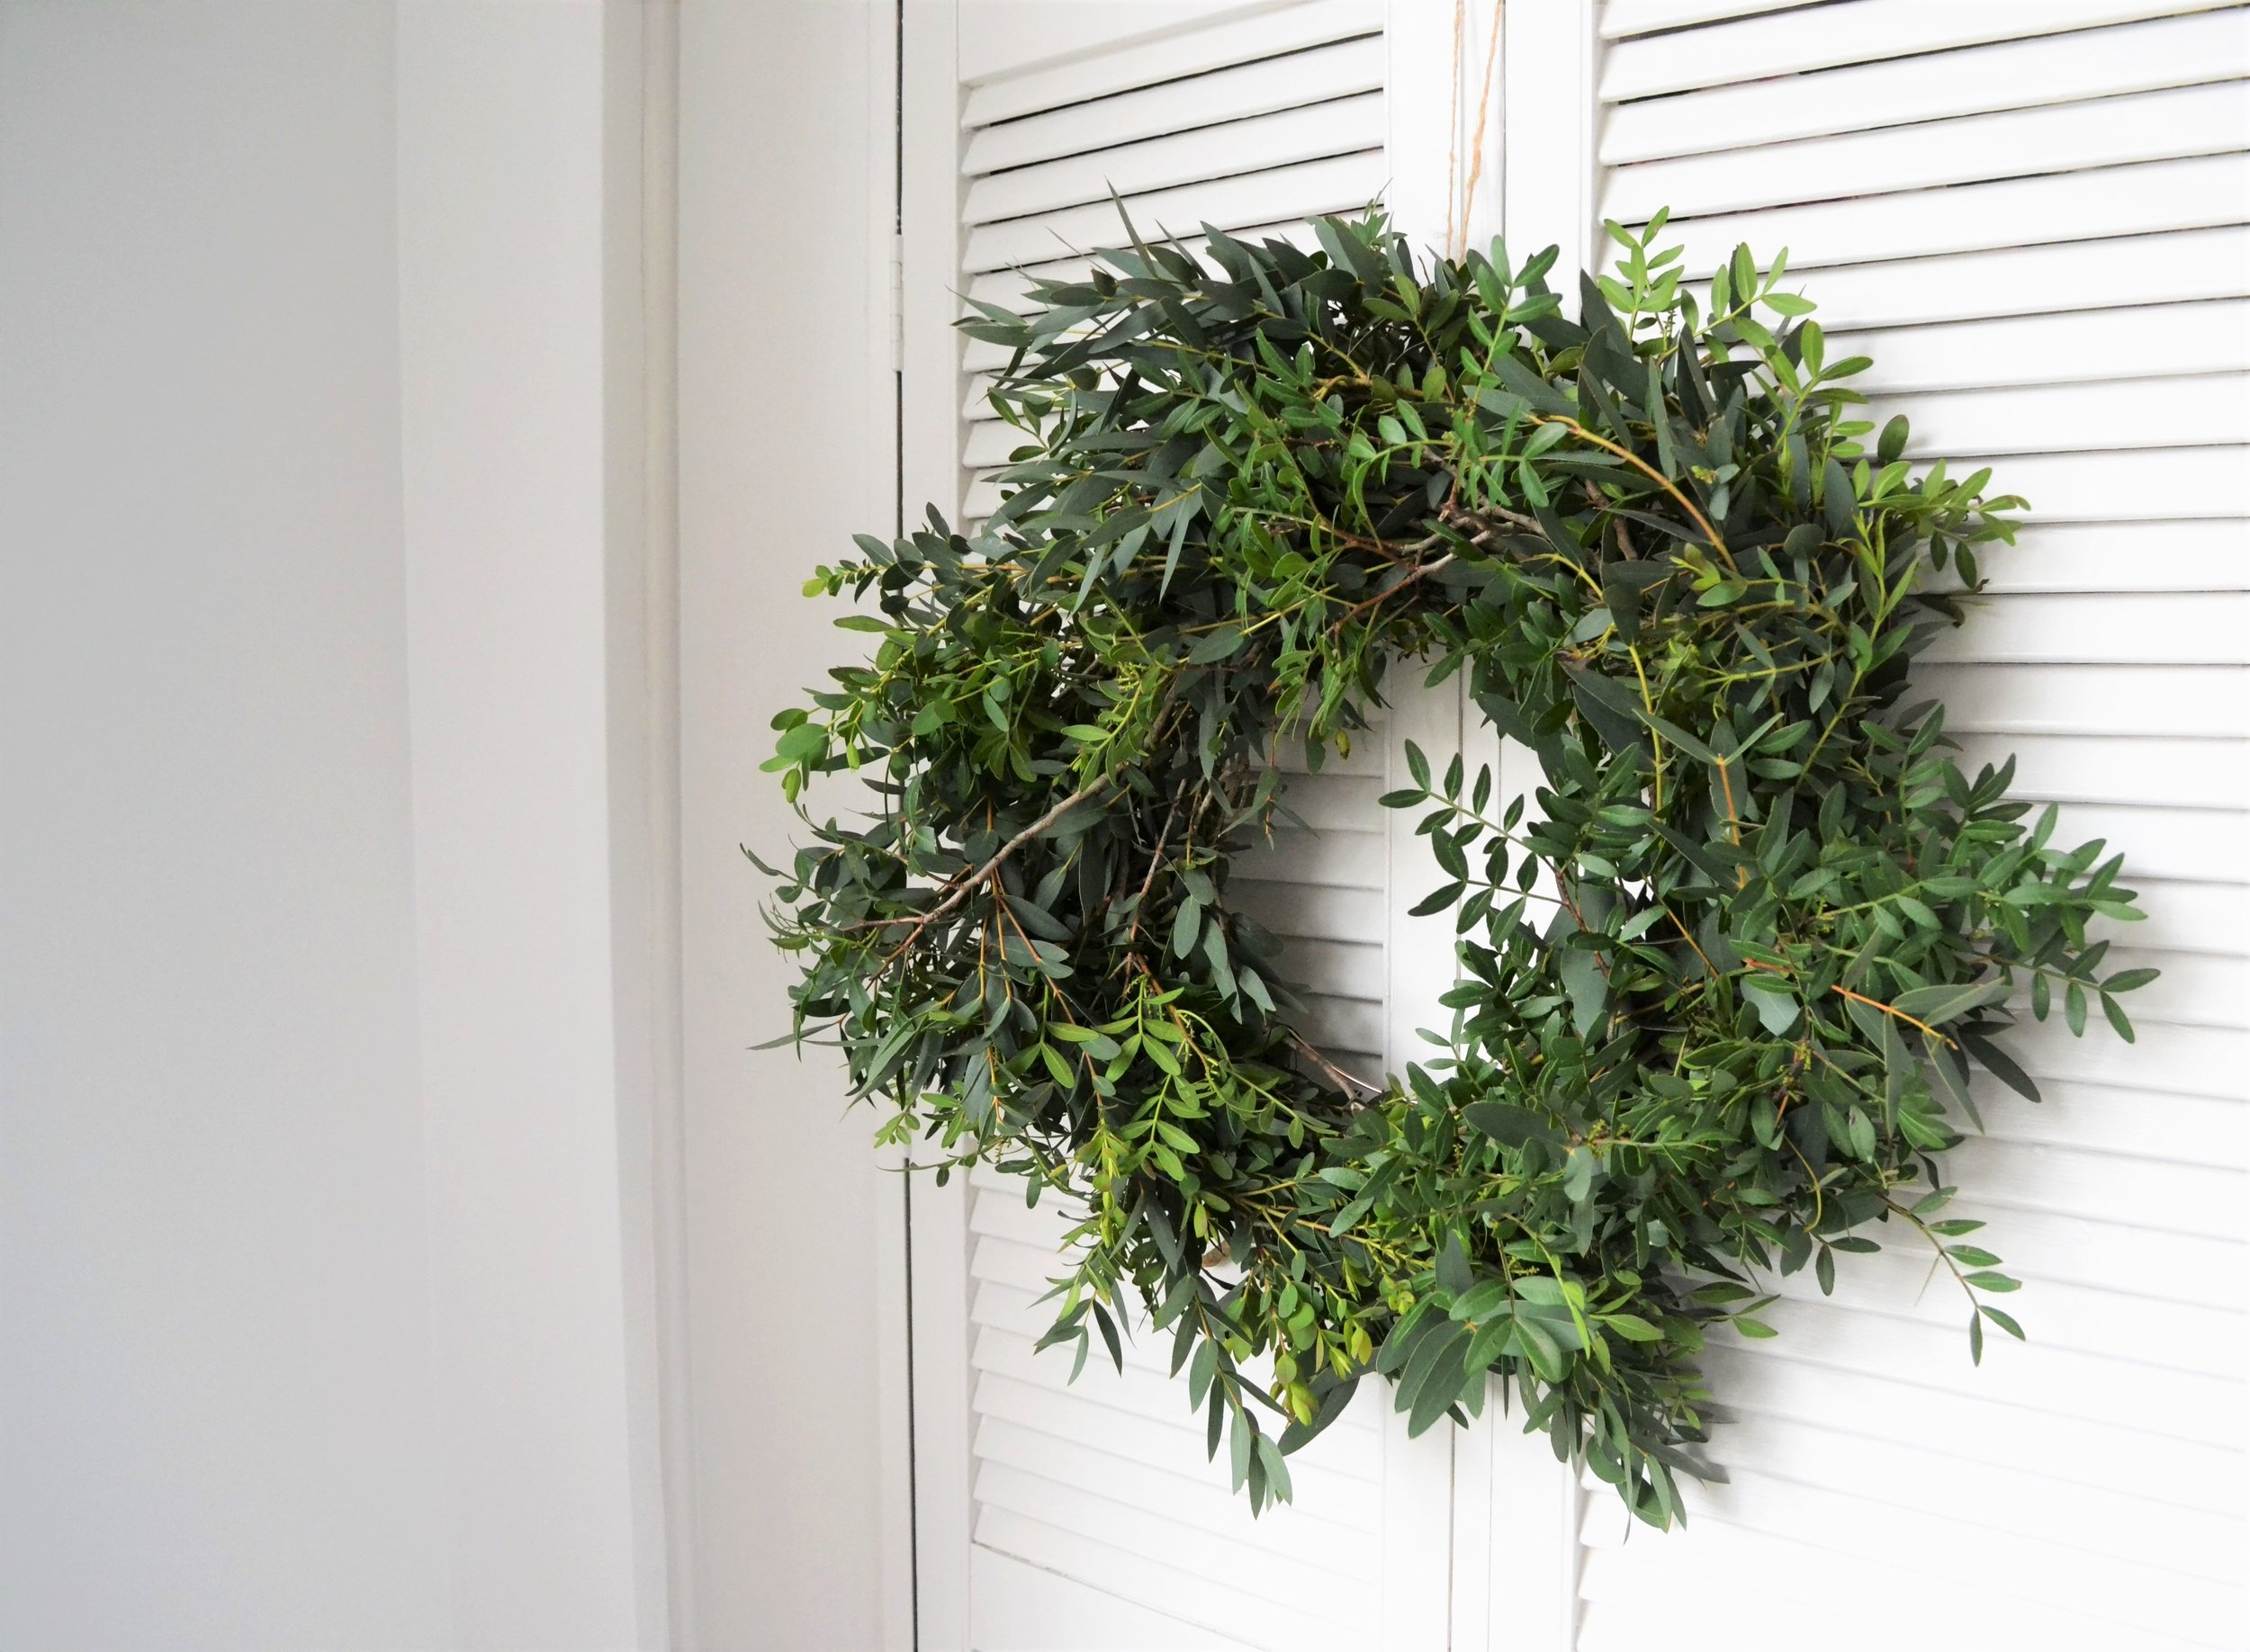 Webb-and-Farrer-Brighton-Florist-Sussex-Wedding-Flowers-How-to-make-a-foliage-wreath-DIY-tutorial (4).JPG